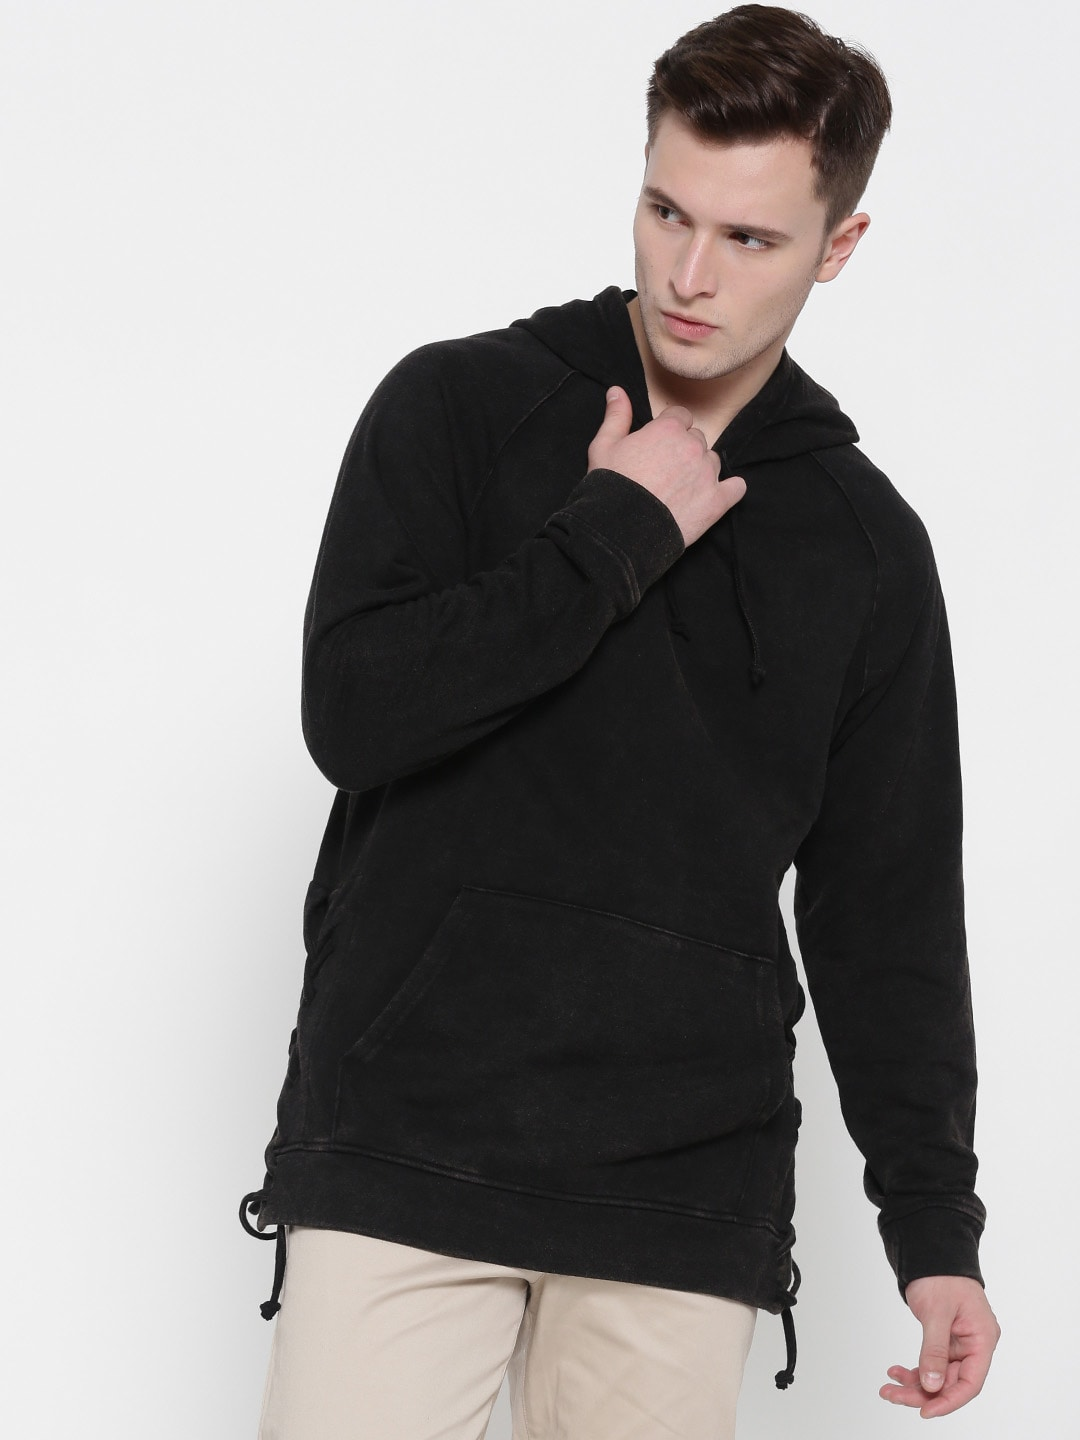 FOREVER 21 Men Black Solid Hooded Sweatshirt image